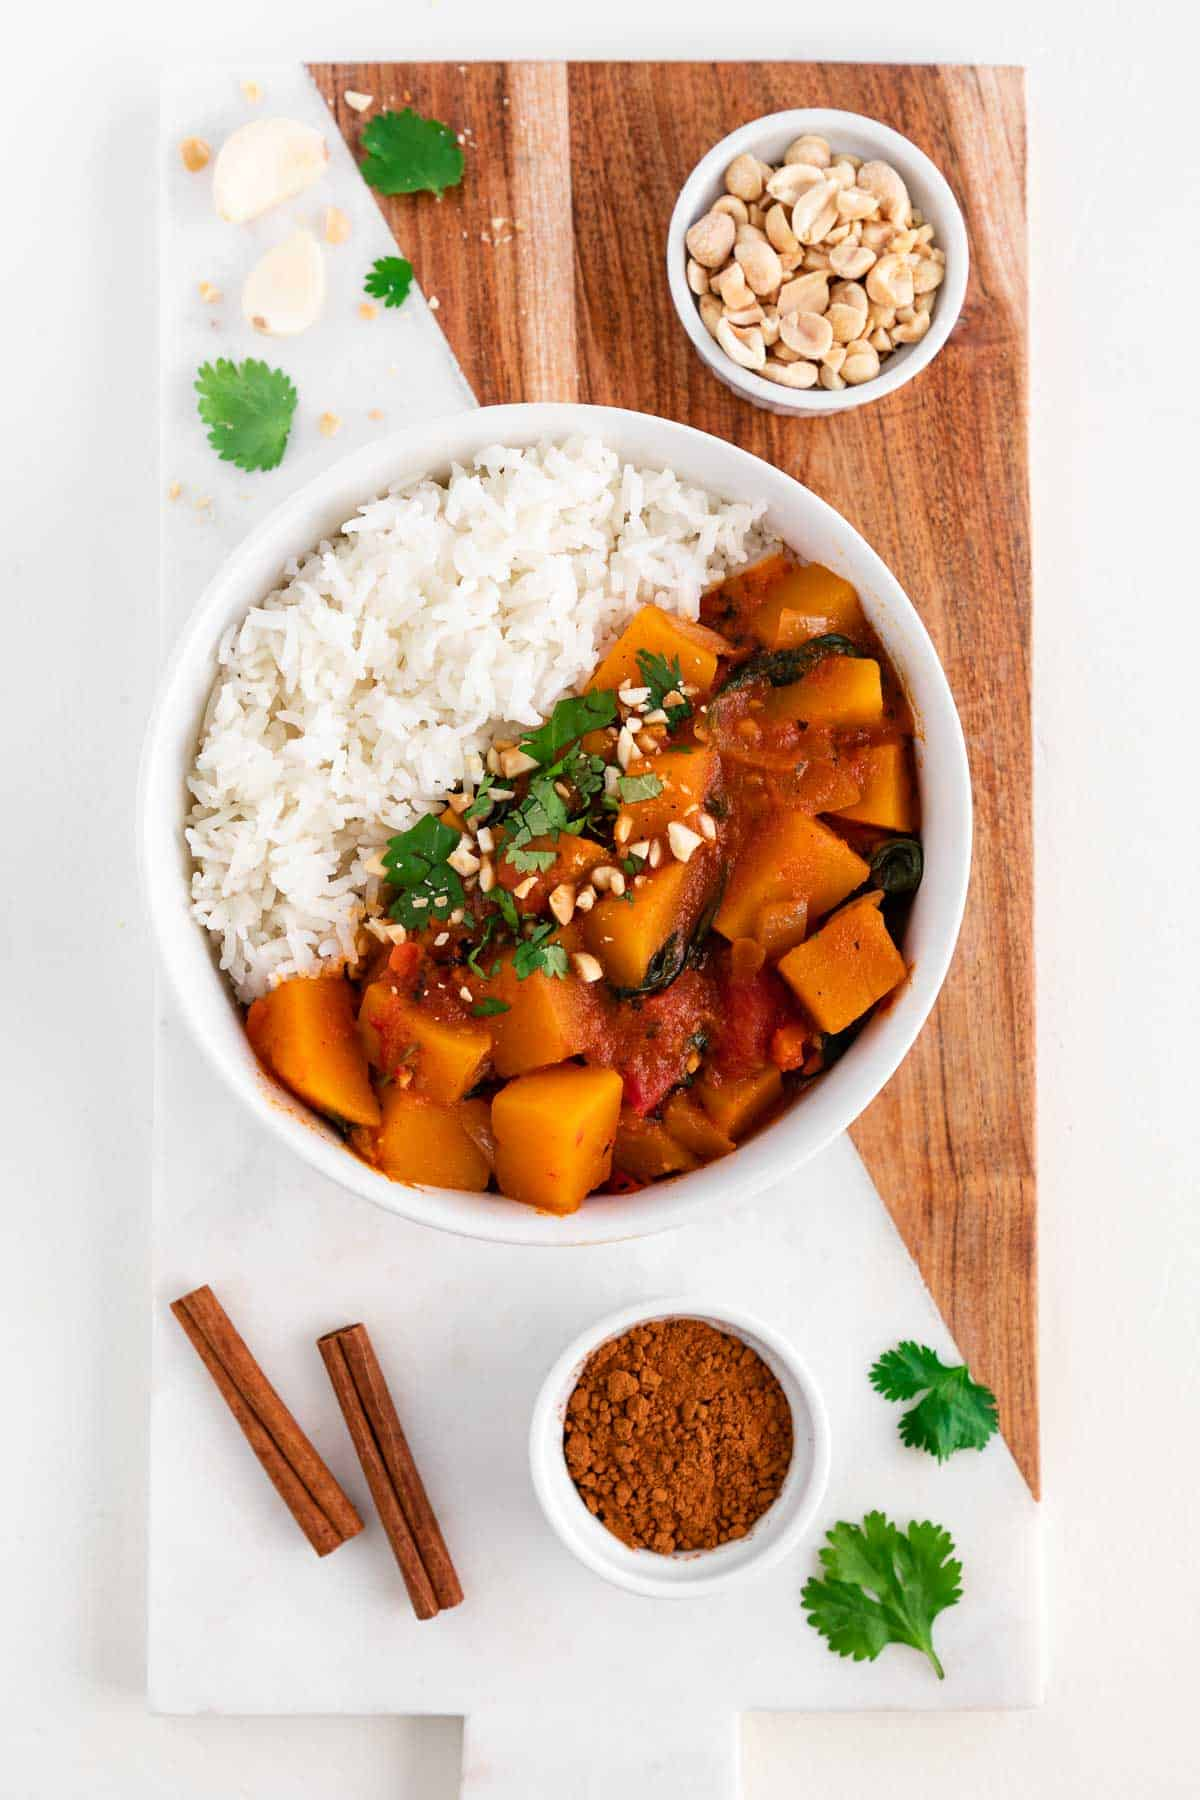 a wood and marble cutting board topped with a bowl of butternut squash curry, a bowl of peanuts, a bowl of cinnamon, and fresh cilantro